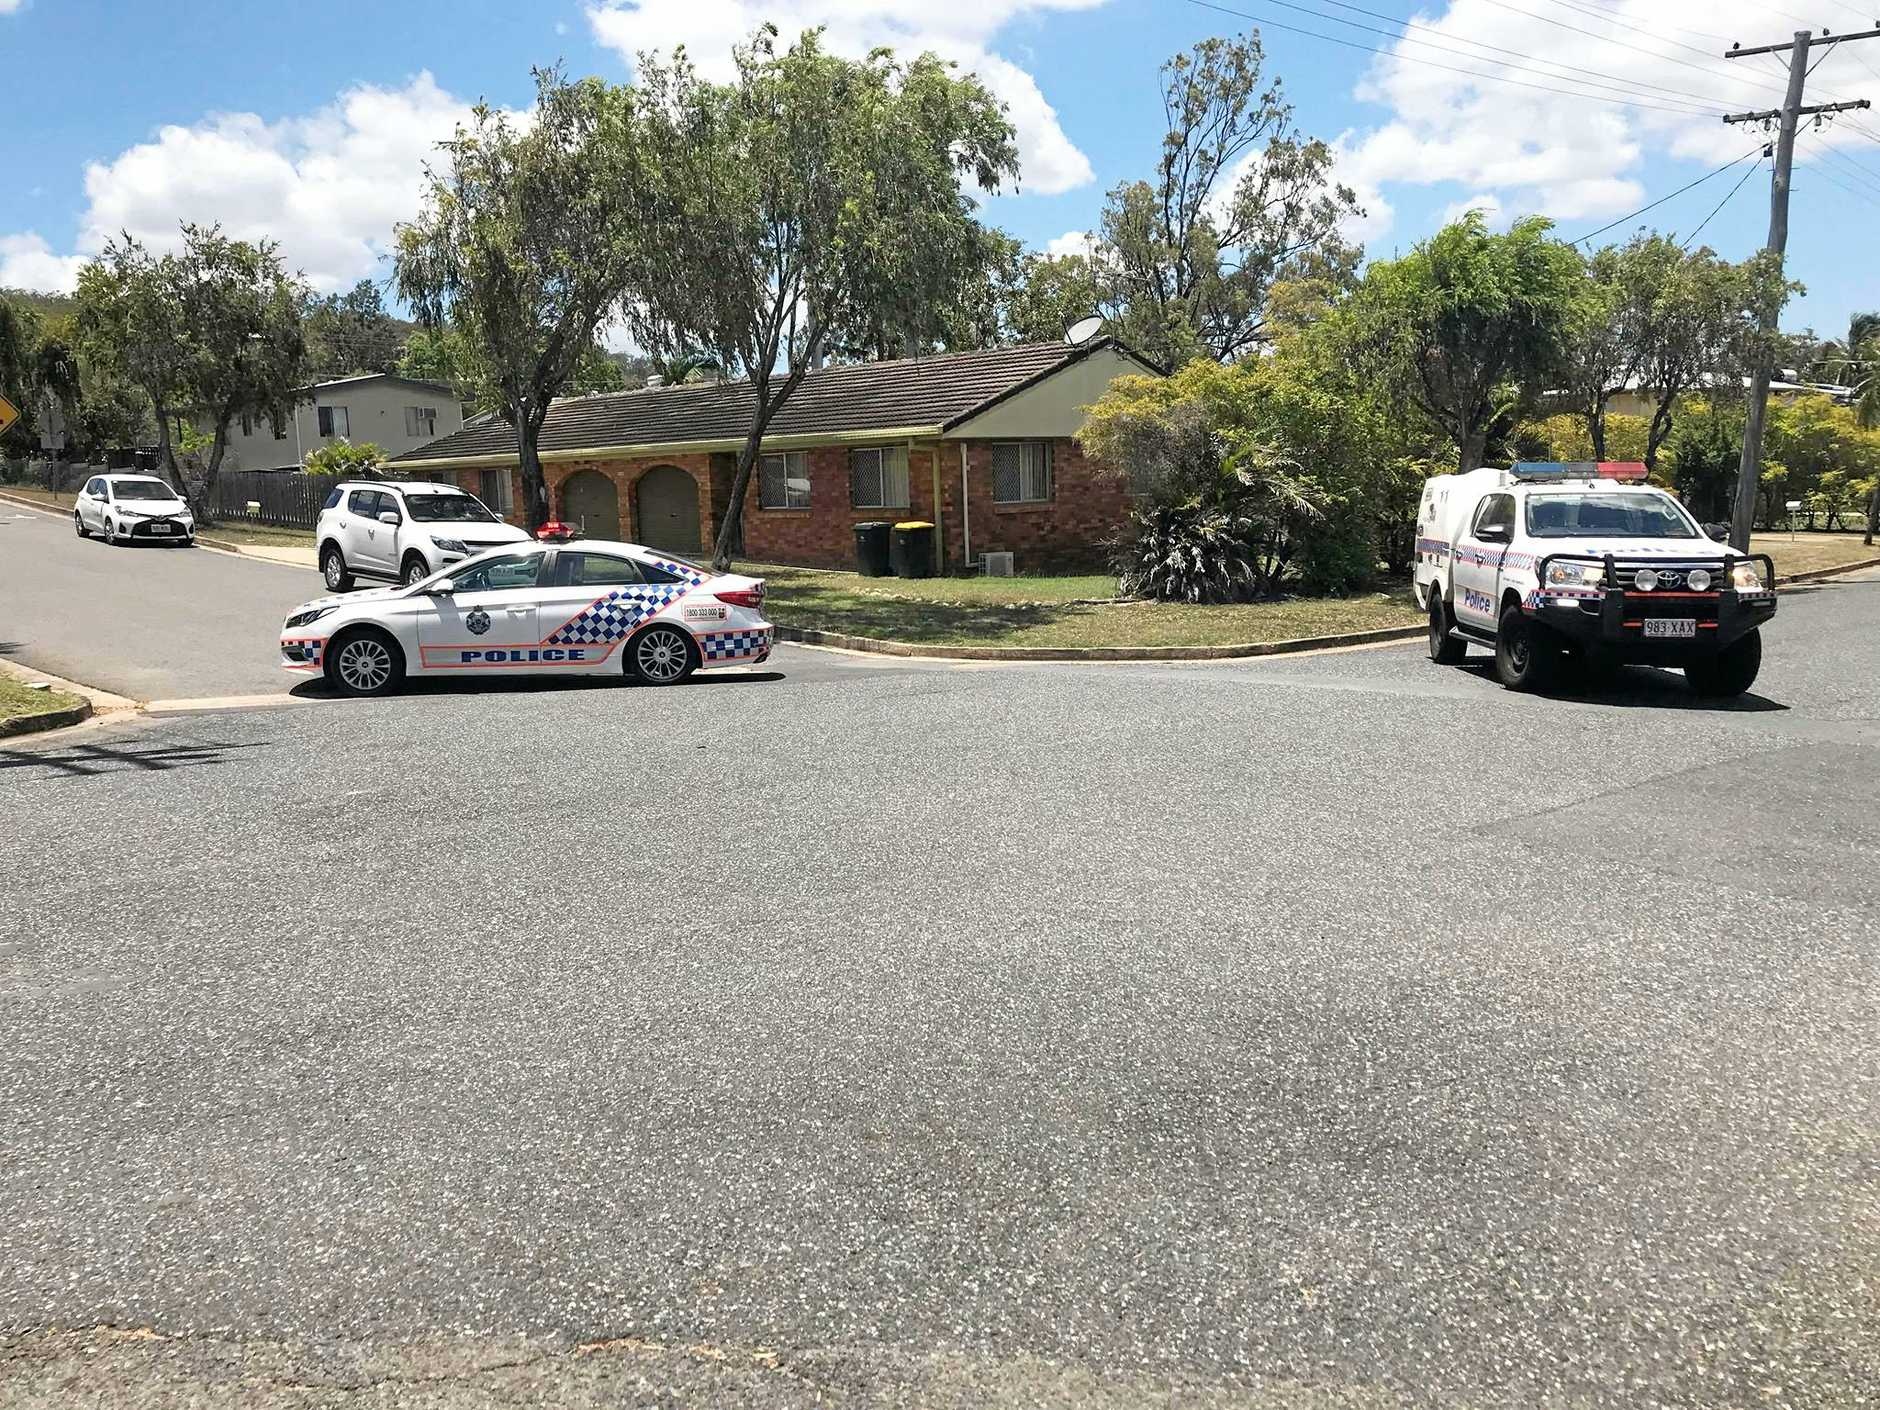 Police blocked off a residential area of Frenchville on Tuesday to manage a police incident.